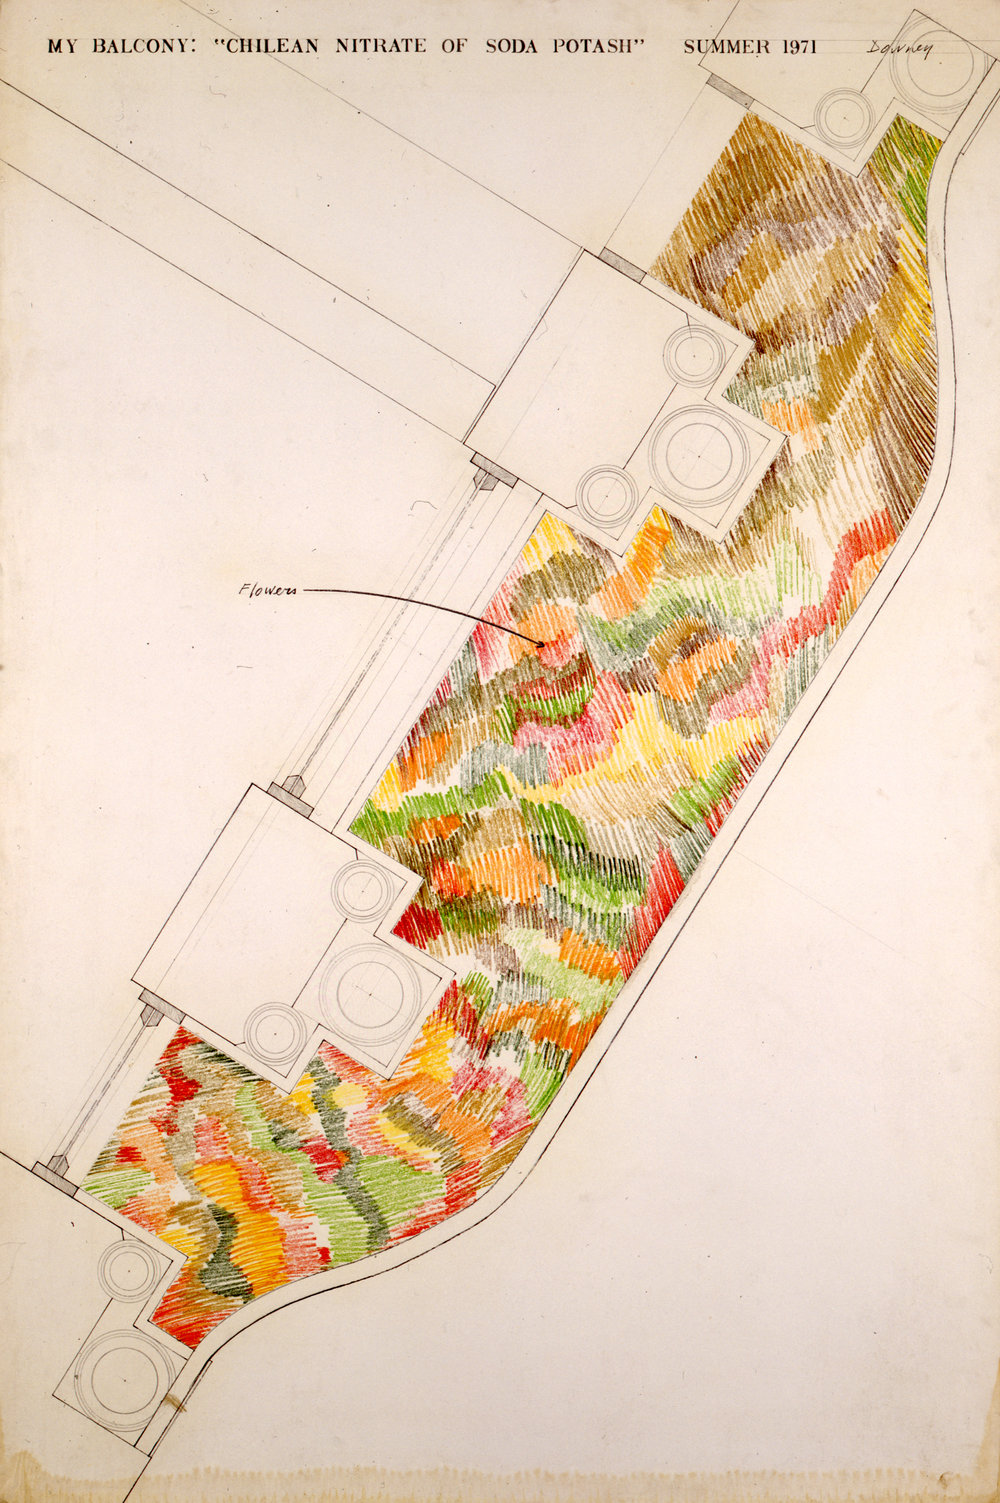 Juan Downey,  My Balcony: Chilean Nitrate of Soda Potash , 1971. Graphite and color pencil on Bristol Board, 60 x 40 inches. Courtesy of the Estate of Juan Downey, New York.